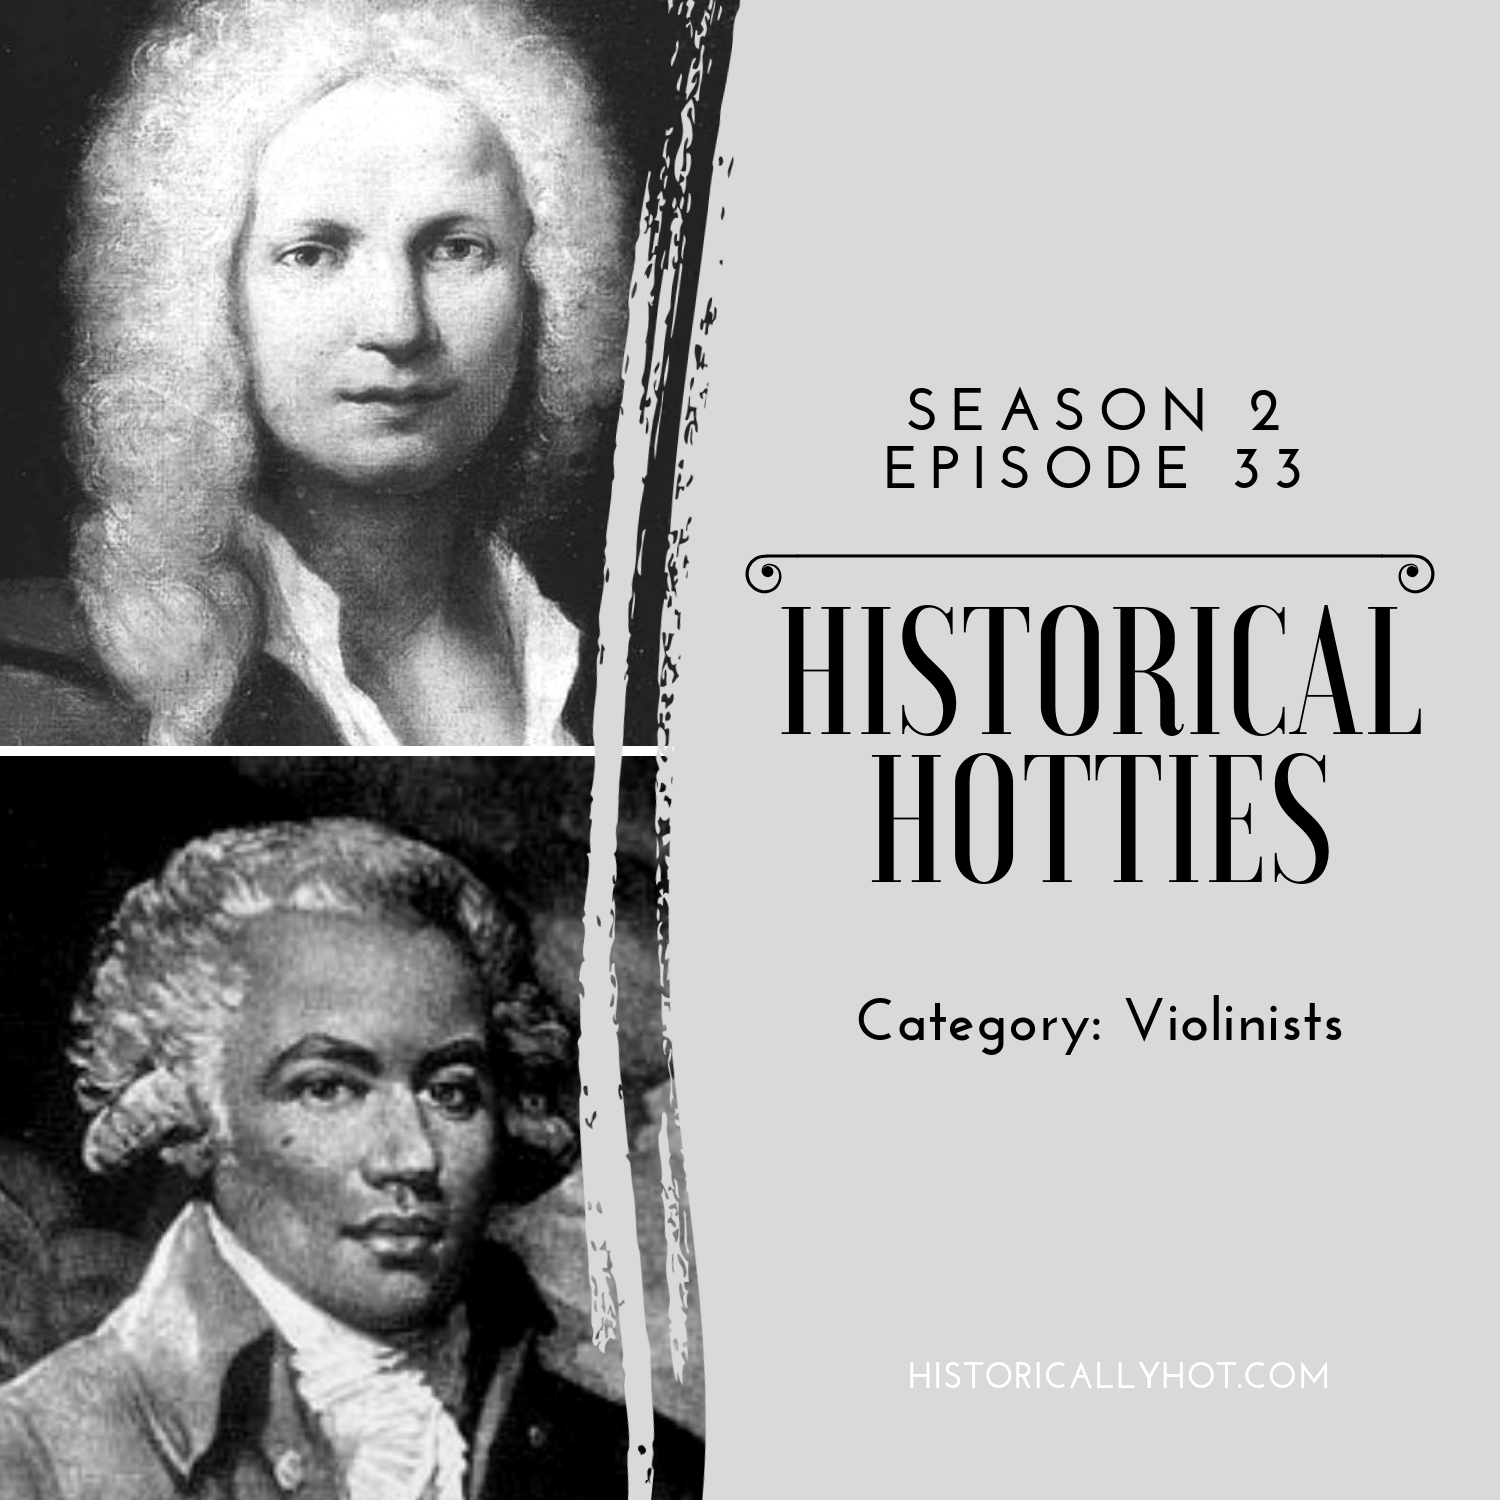 historical hotties violinist